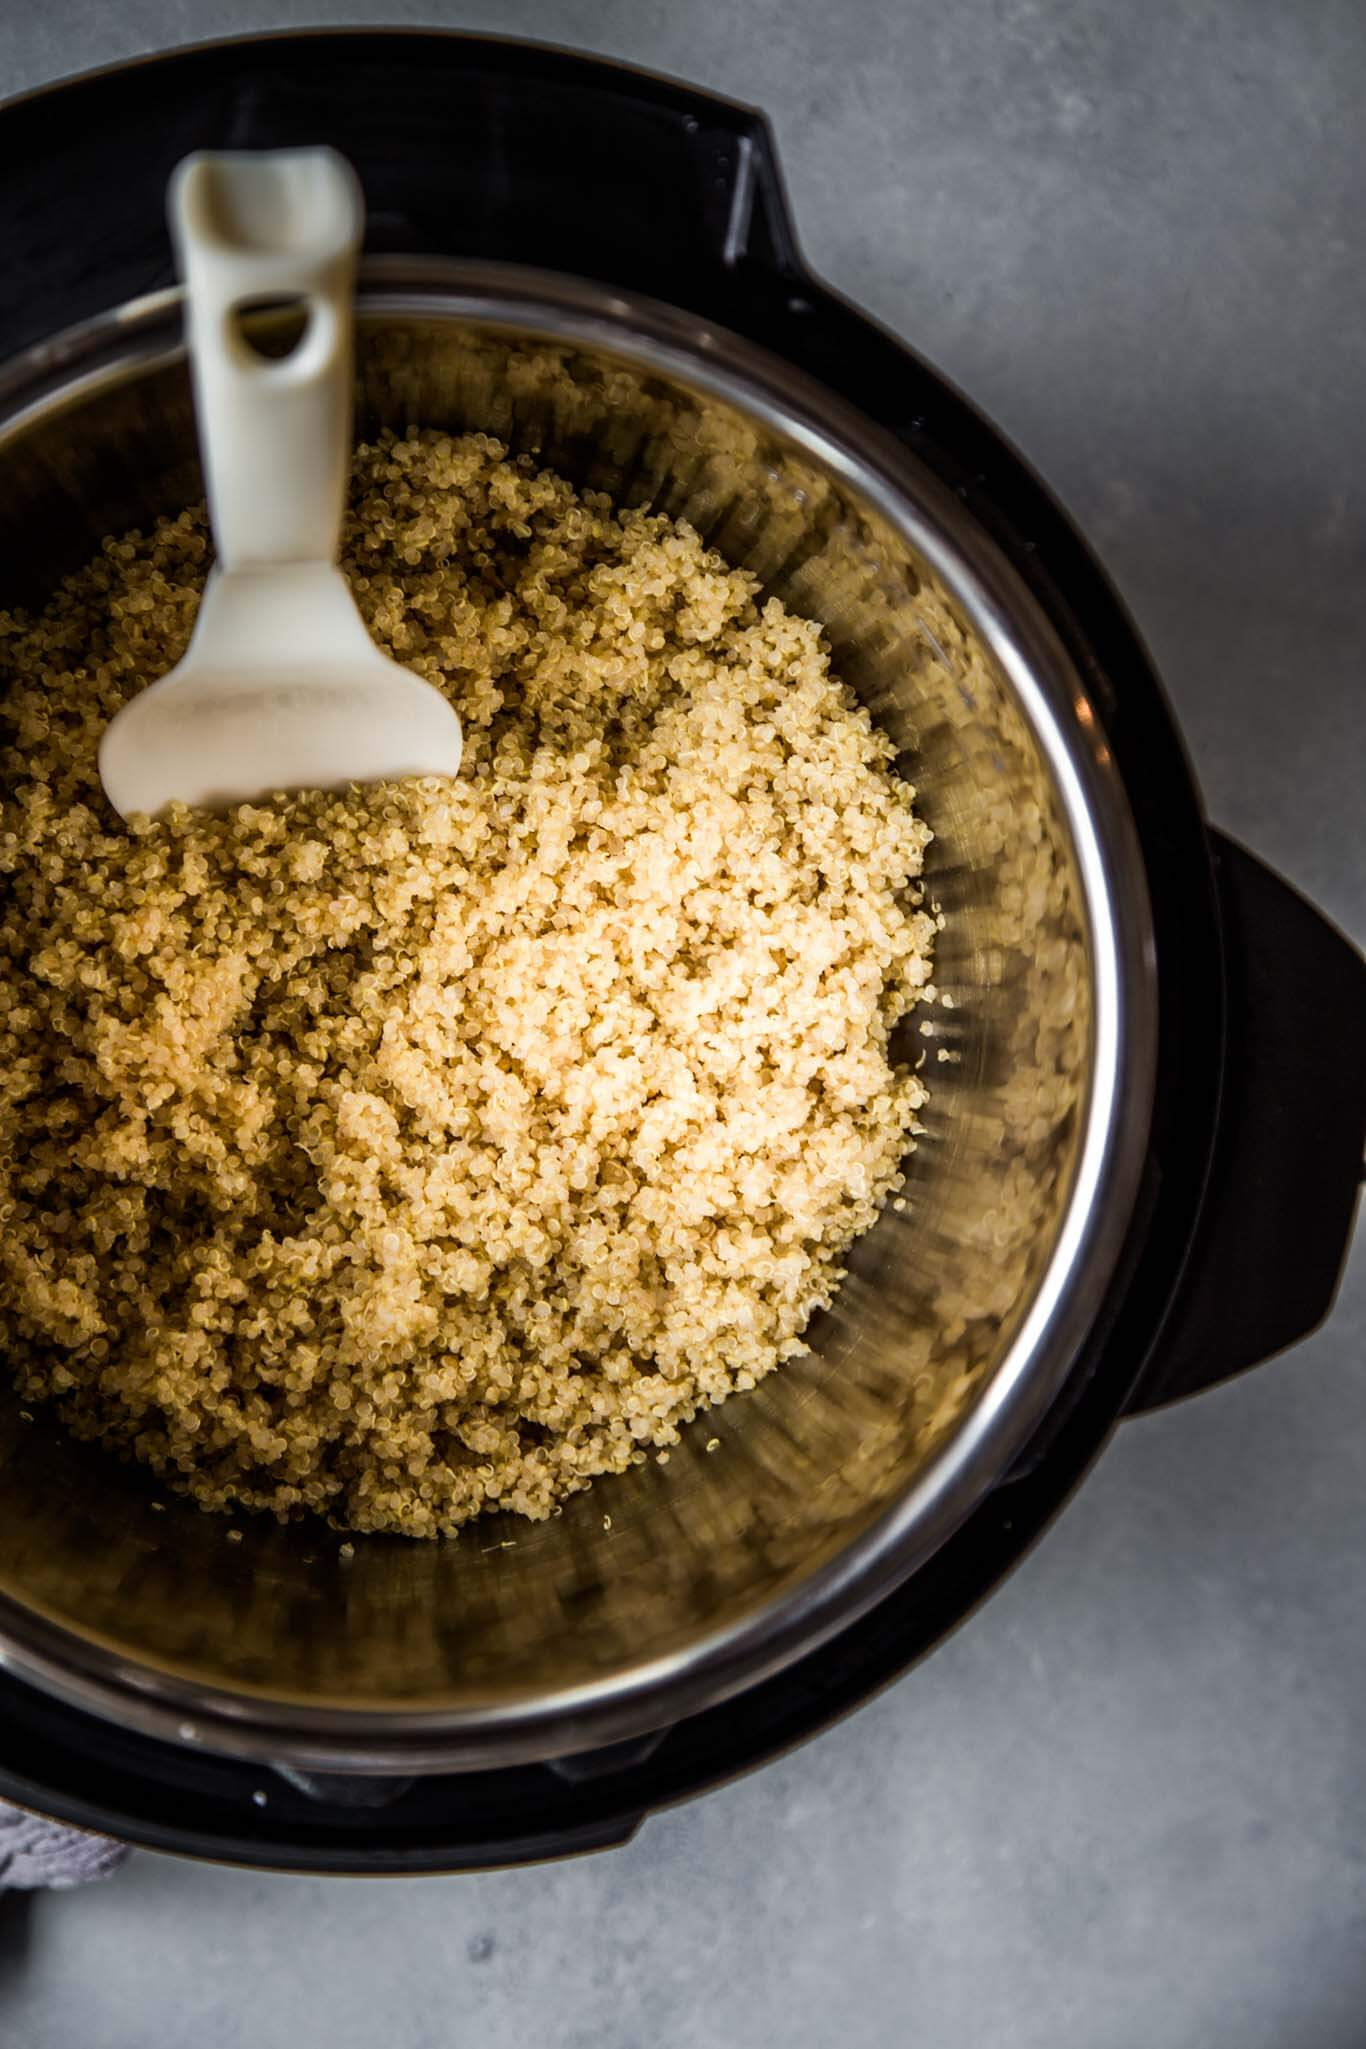 With these easy tips, you'll see it's simple to cook perfect quinoa in the Instant Pot with minimal measuring. The result is fluffy and flavorful quinoa that's super simple to prepare.